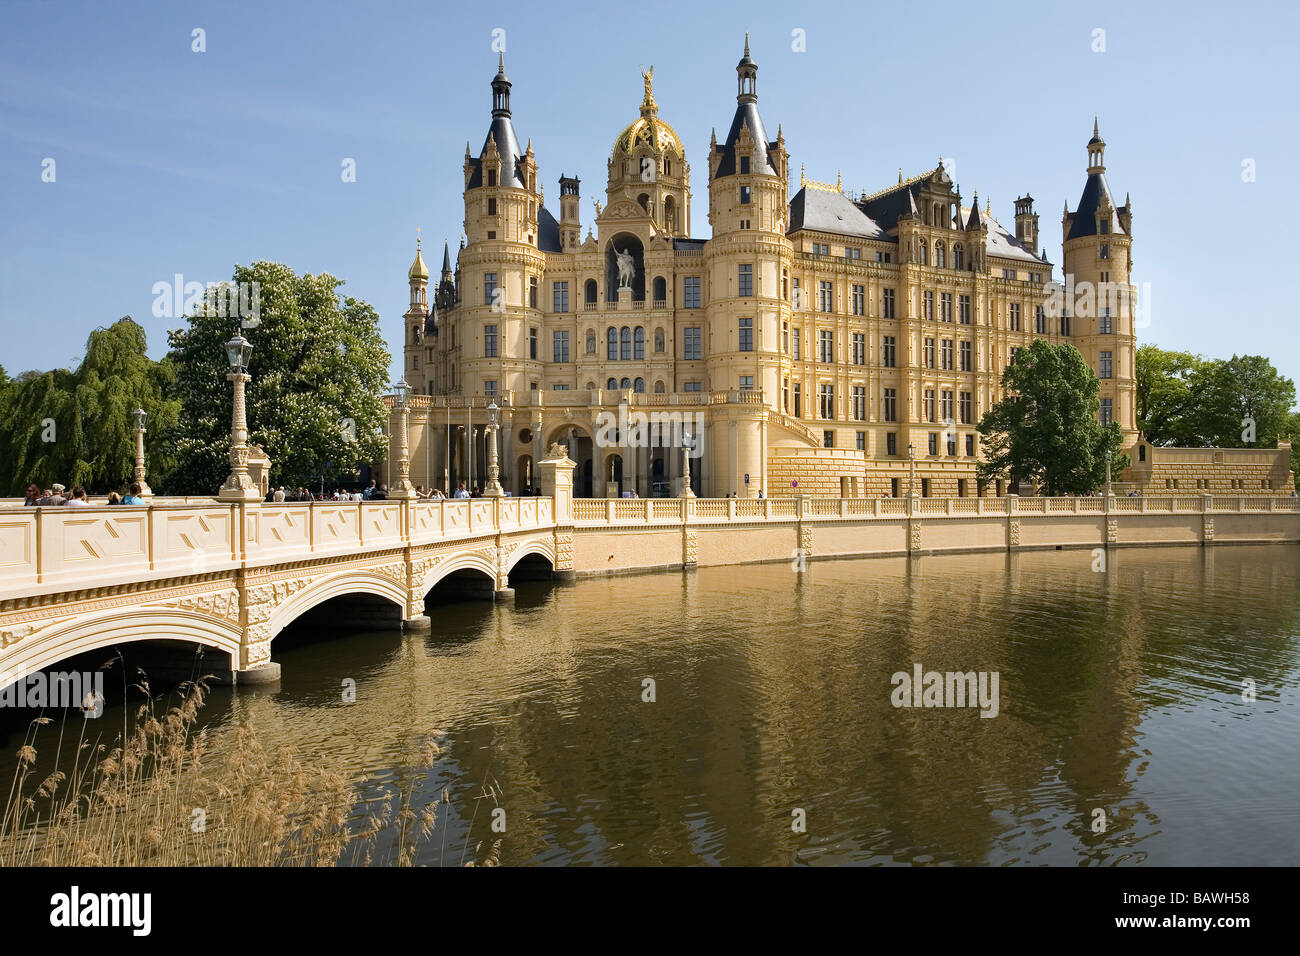 The fairytale castle in Schwerin, a photo from Mecklenburg ...